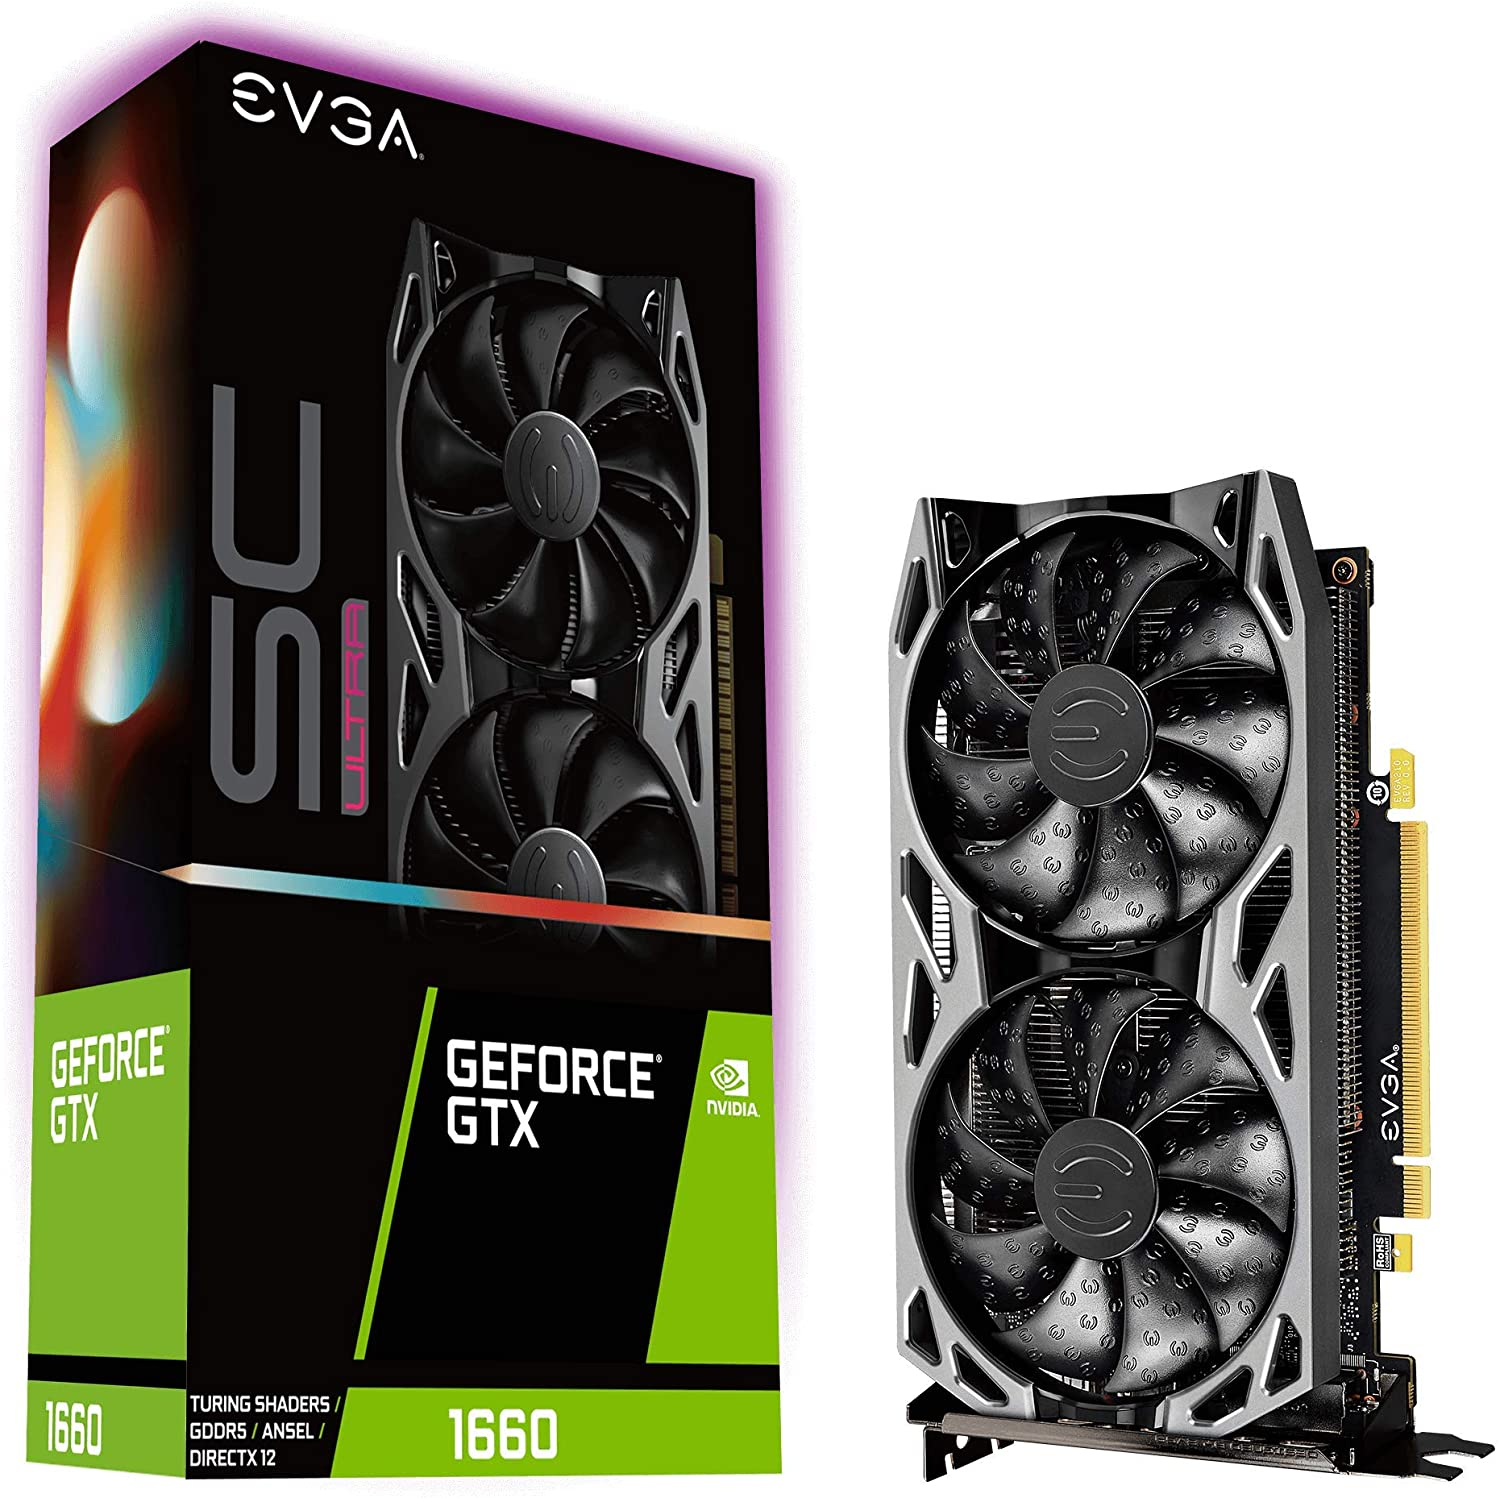 EVGA GeForce GTX 1660 SC Ultra Gaming, 06G-P4-1067-KR, 6GB GDDR5, ventilador dual